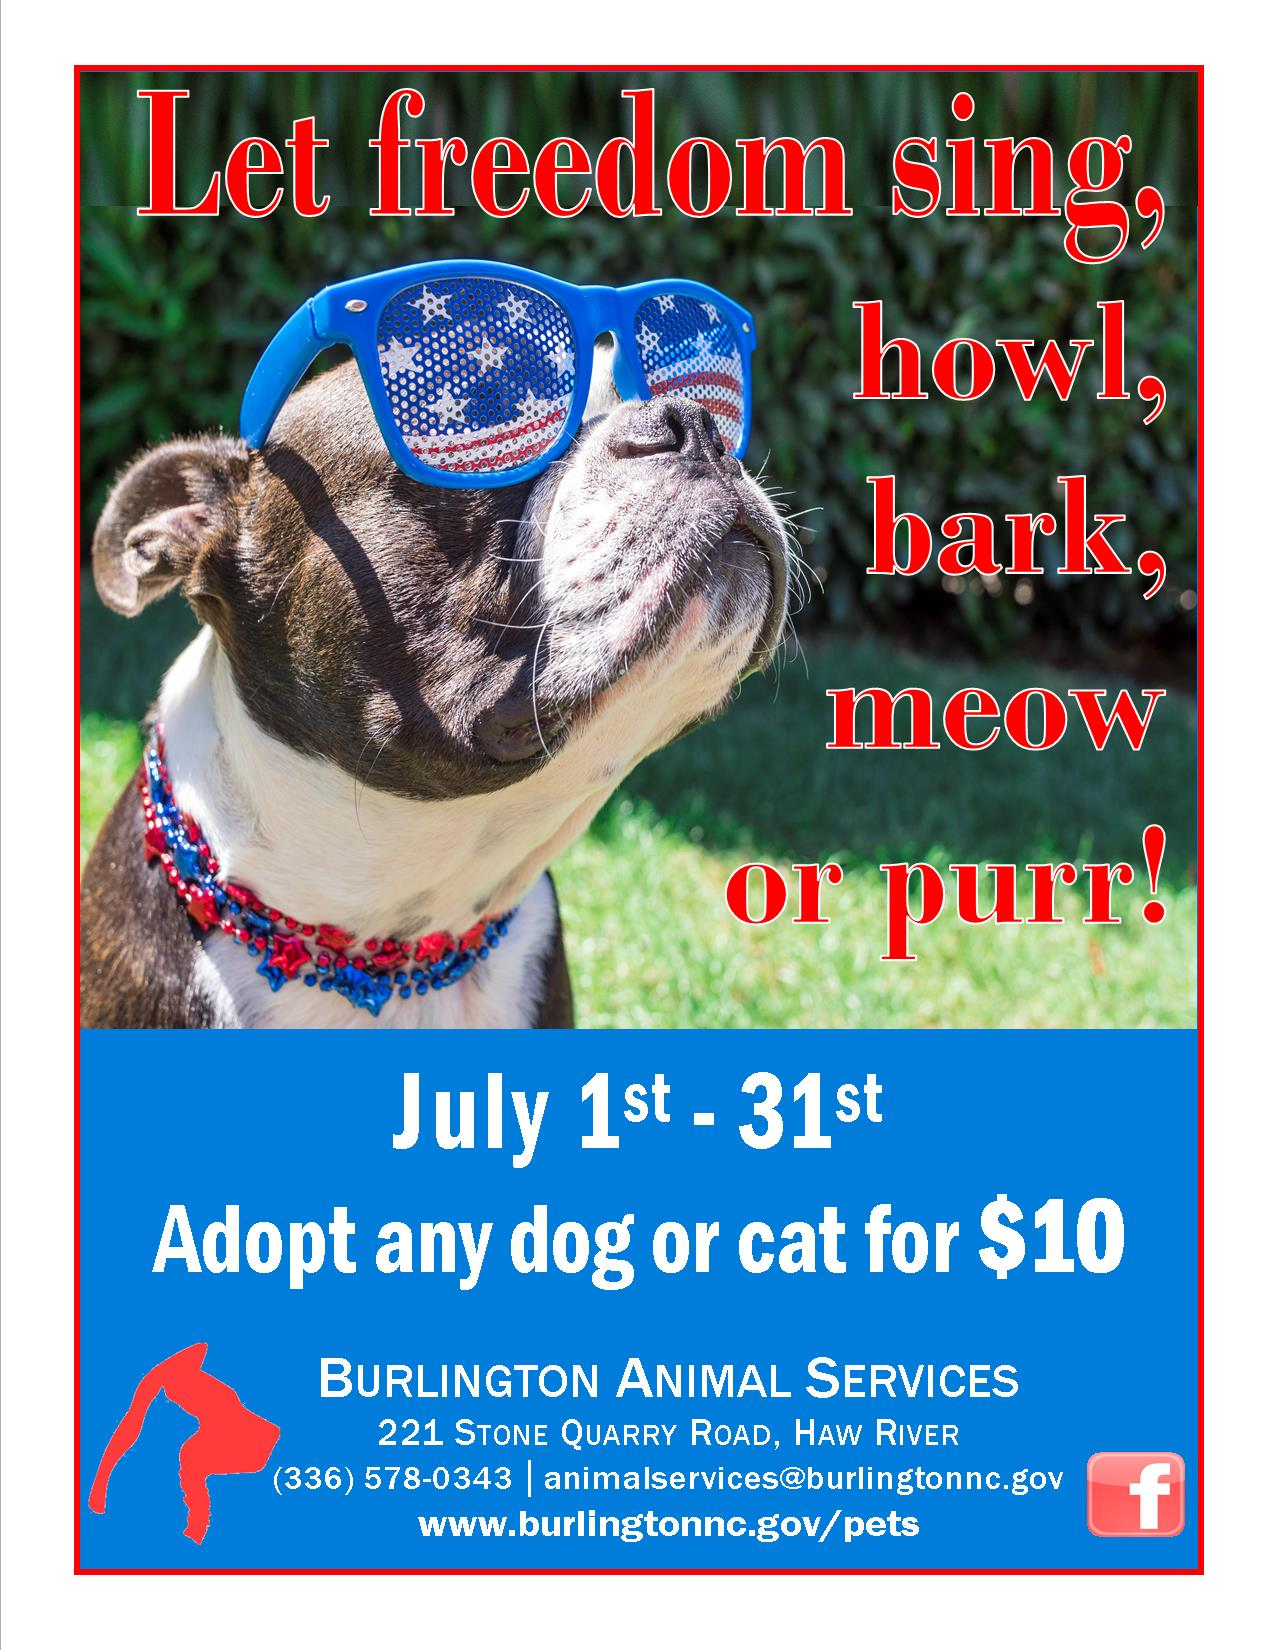 July 2017 adoption special